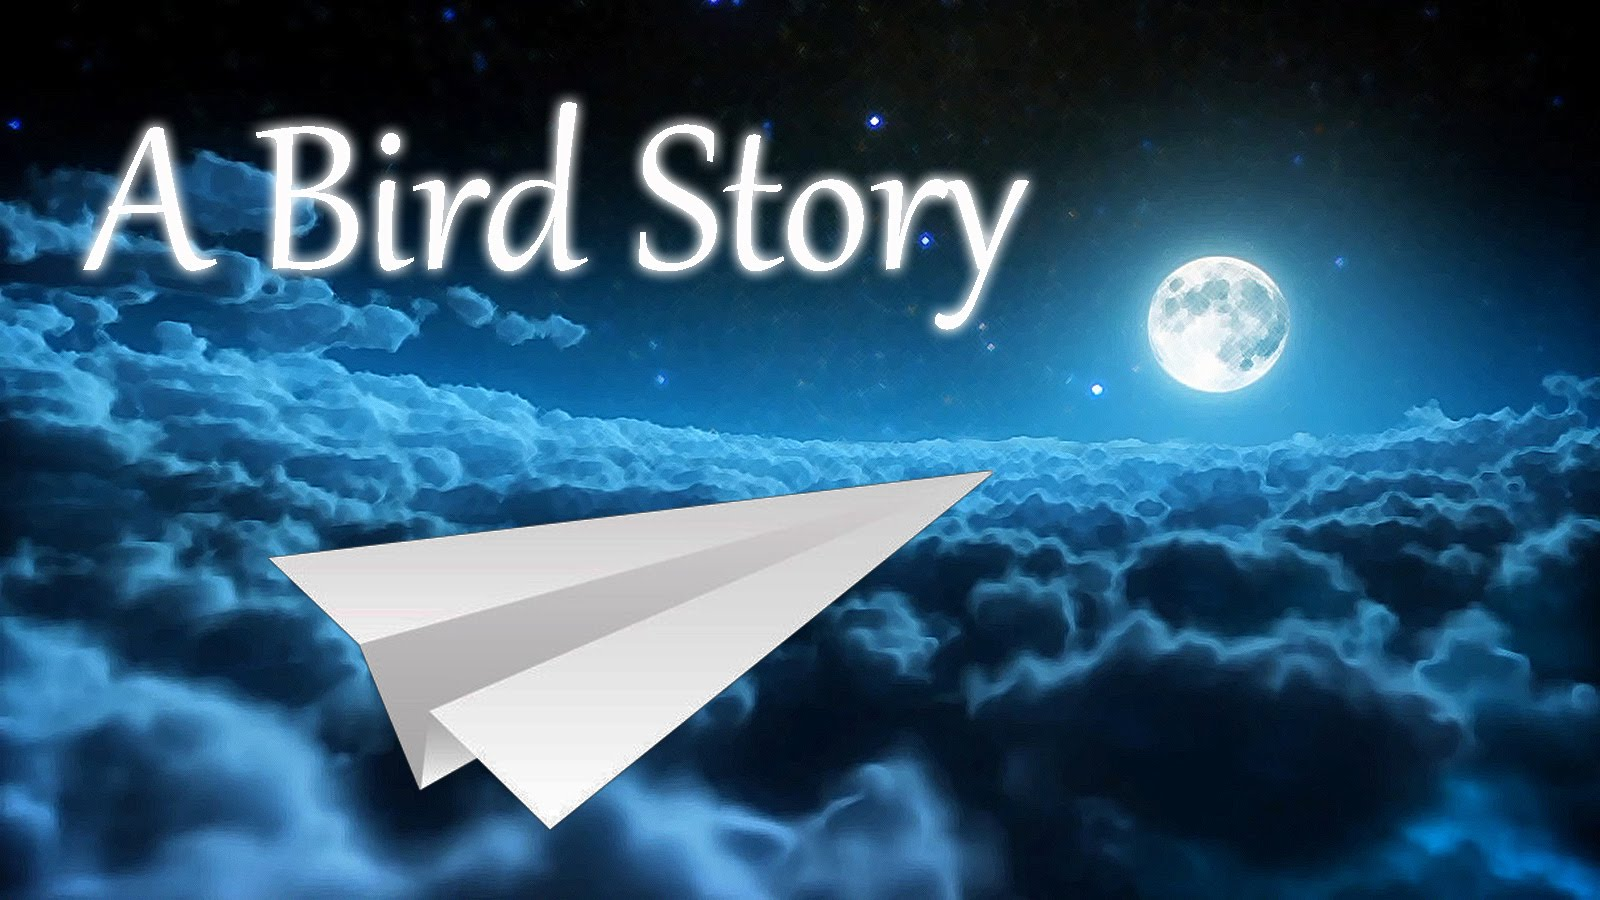 A Bird Story Backgrounds on Wallpapers Vista